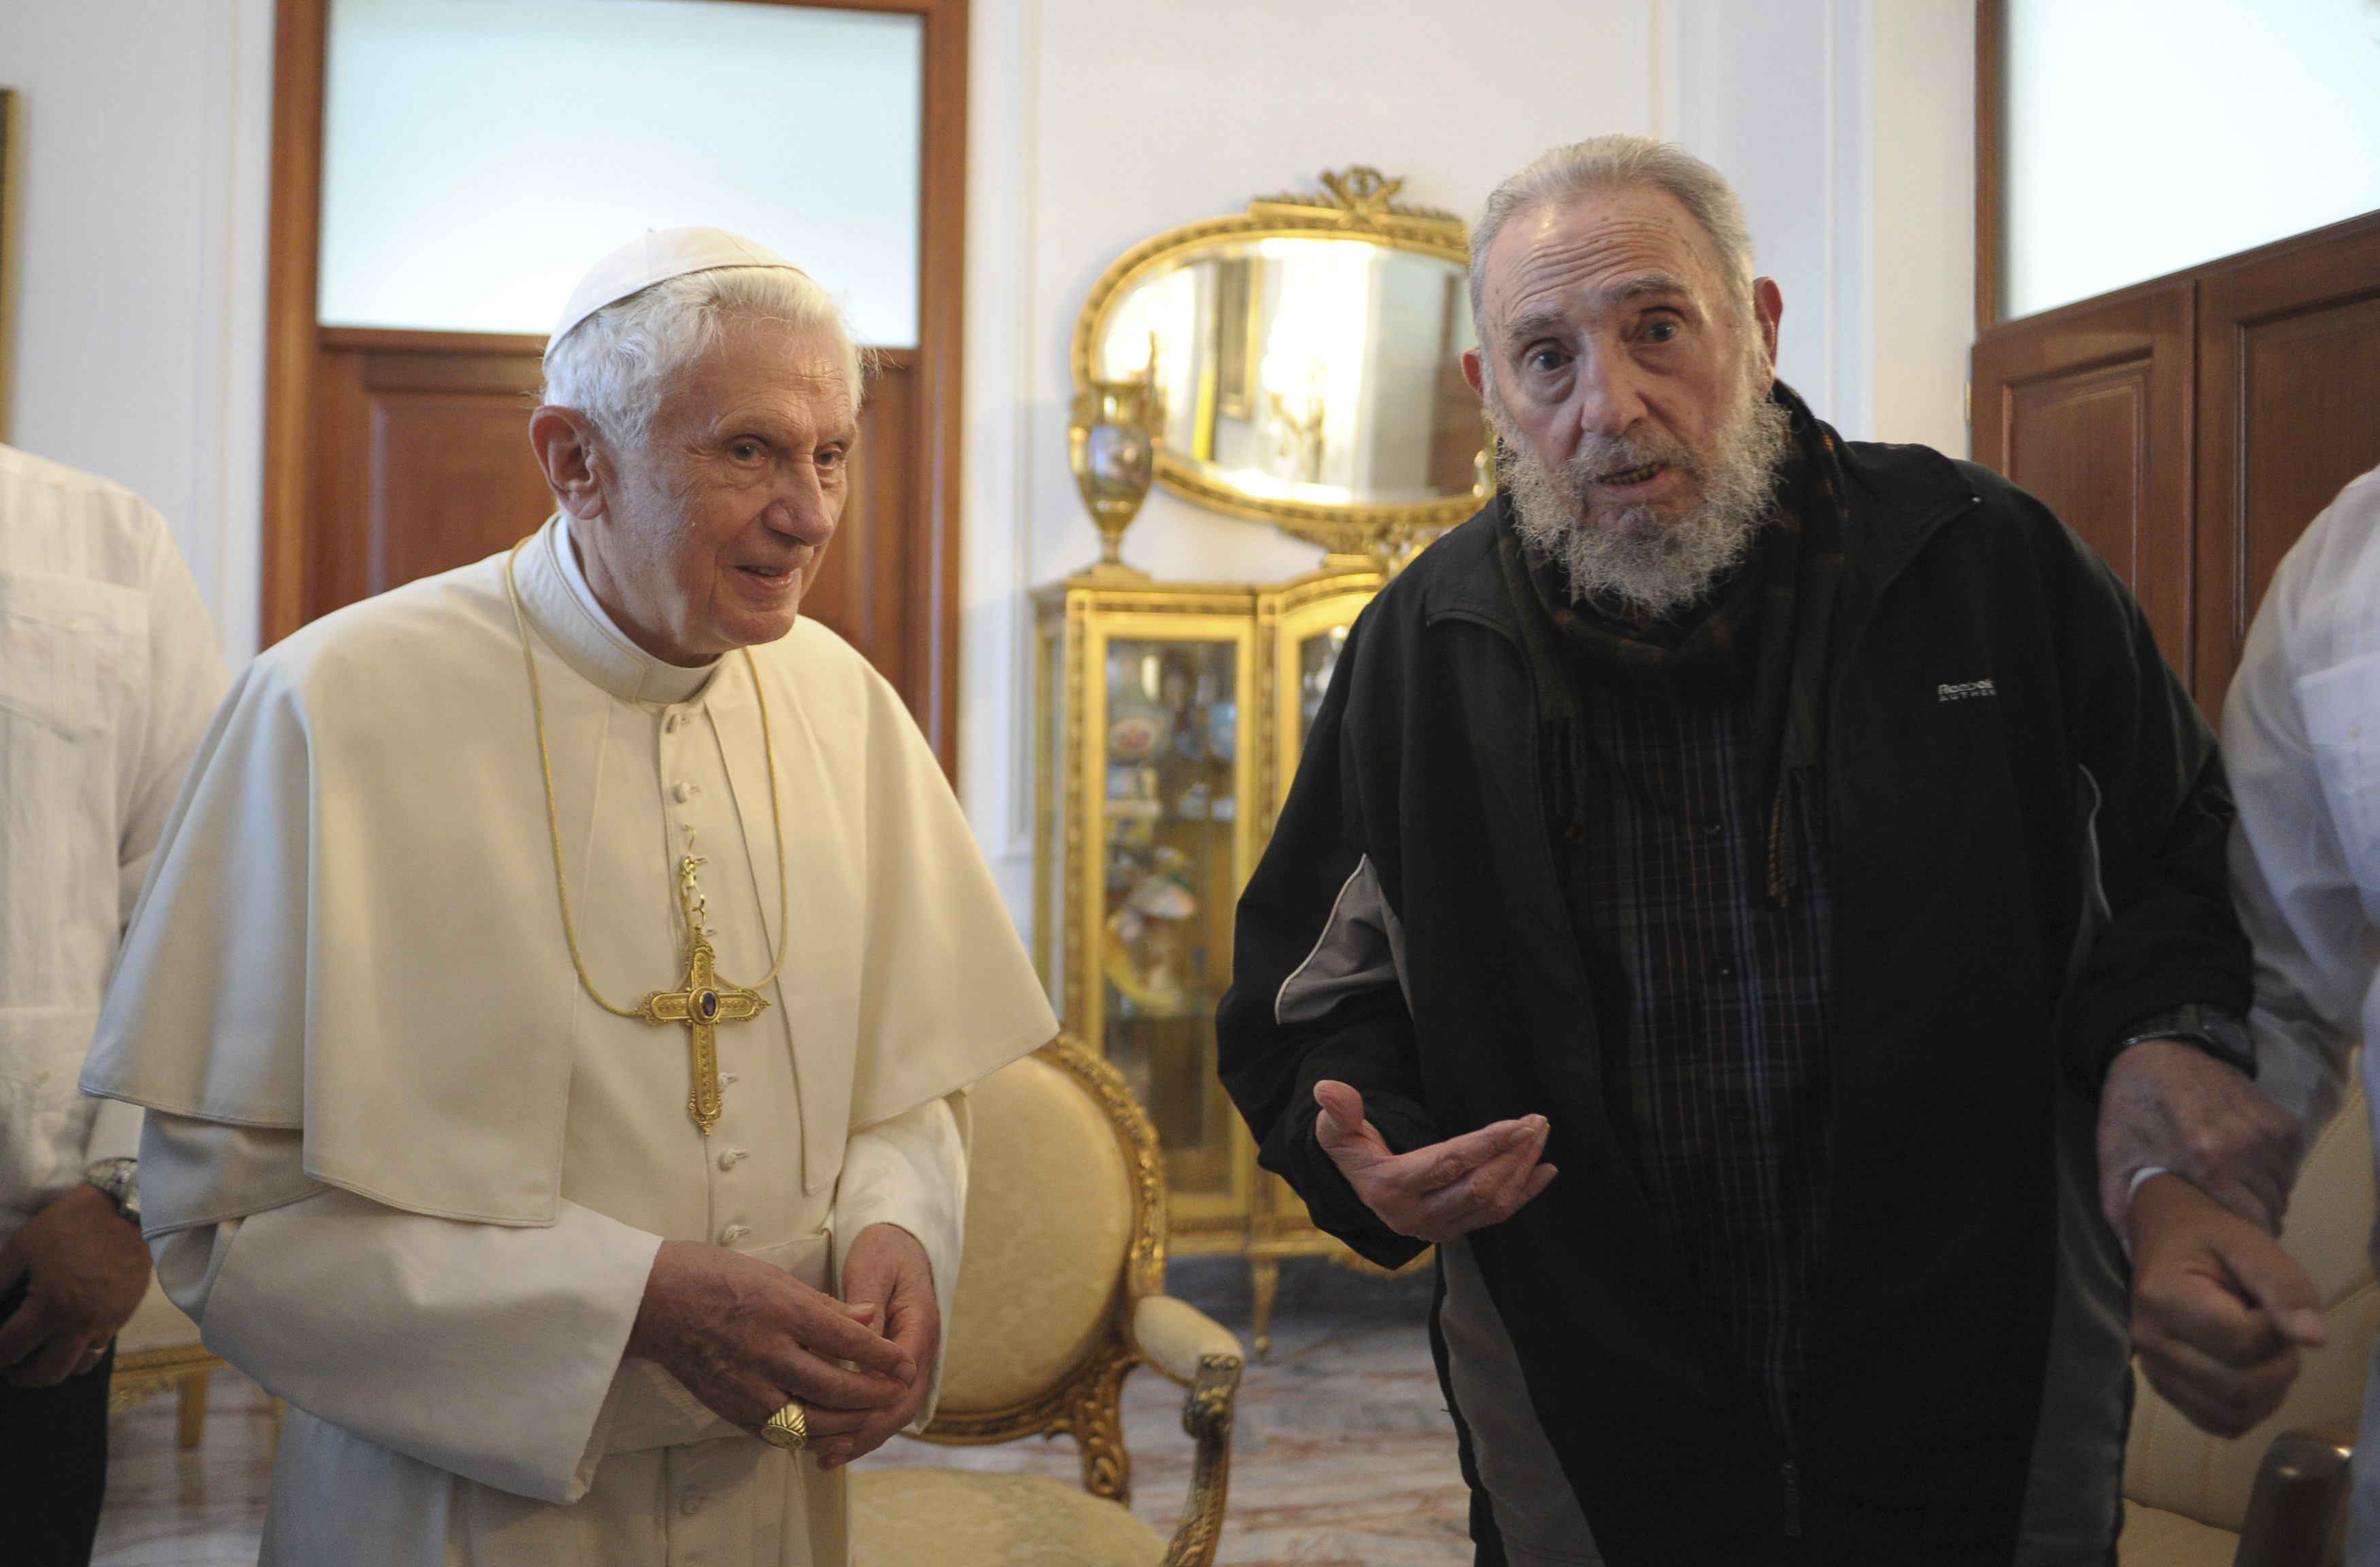 Pope Benedict XVI meets with Cuba's former President Fidel Castro at the apostolic nunciature in Havana March 28. (CNS photo/L'Osservatore Romano via Reuters) (March 28, 2012) See POPE-FIDEL March 28, 2012.